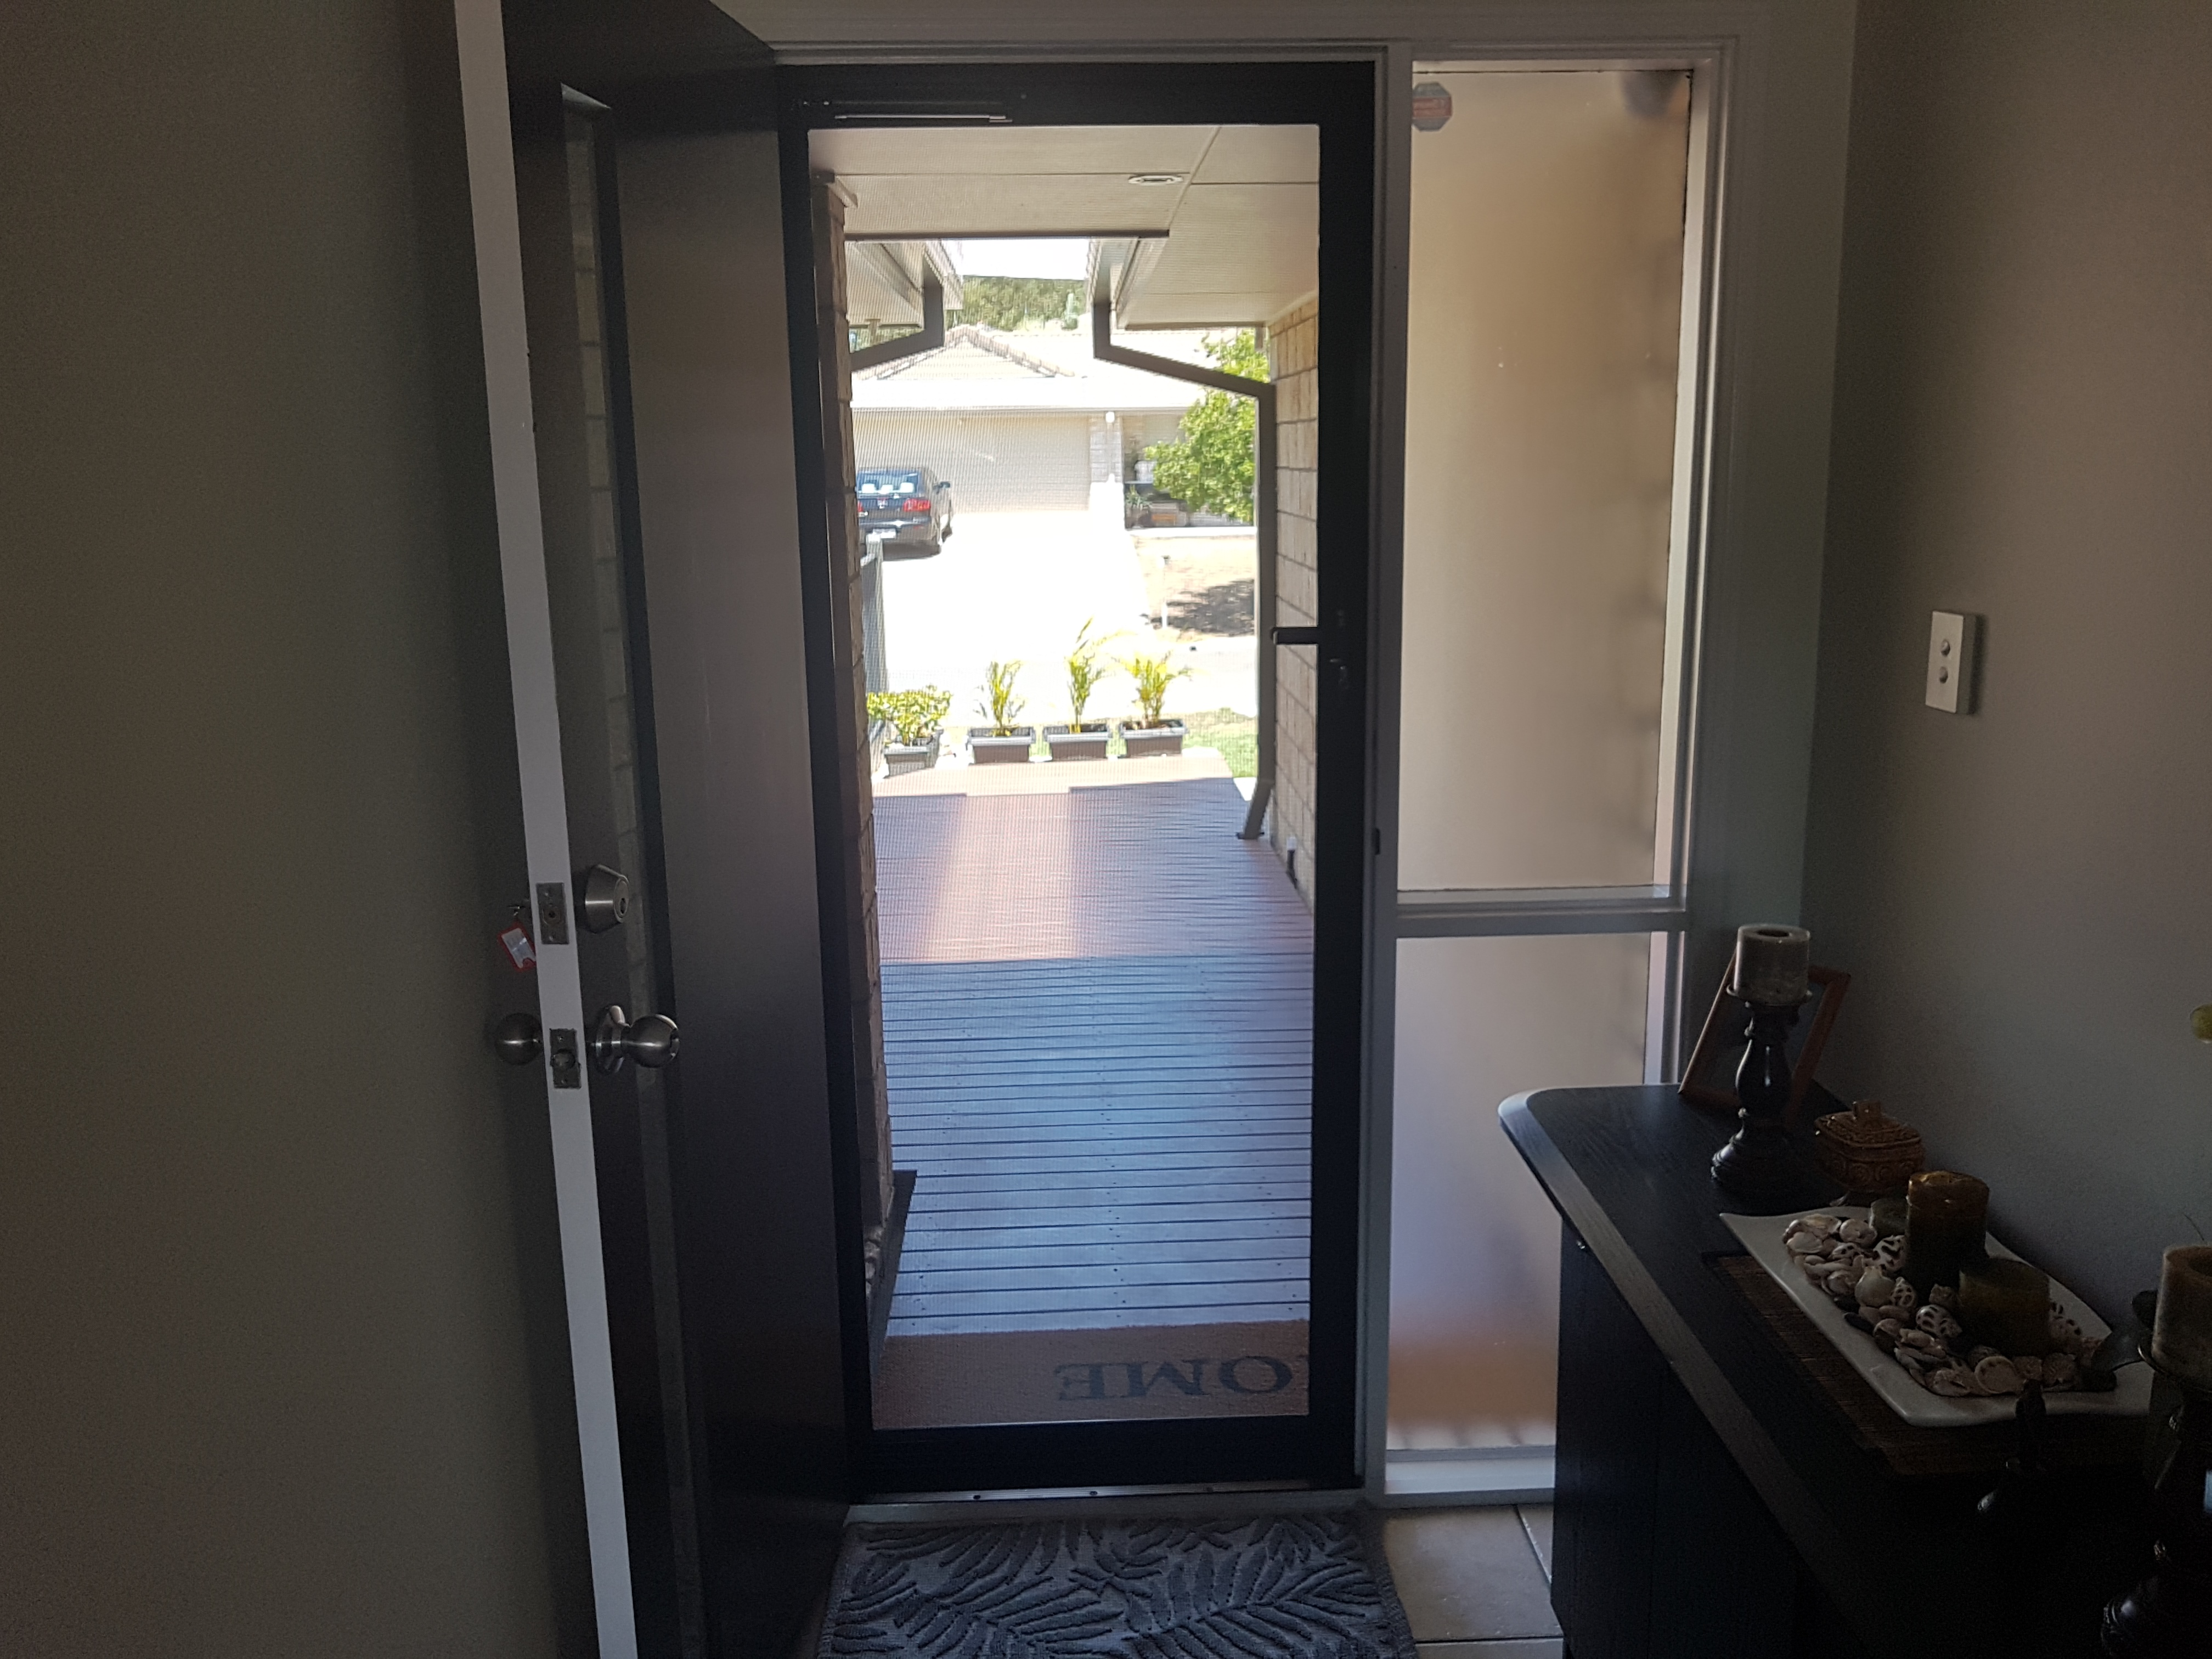 Security doors with stainless steel mesh allow uninterrupted views out